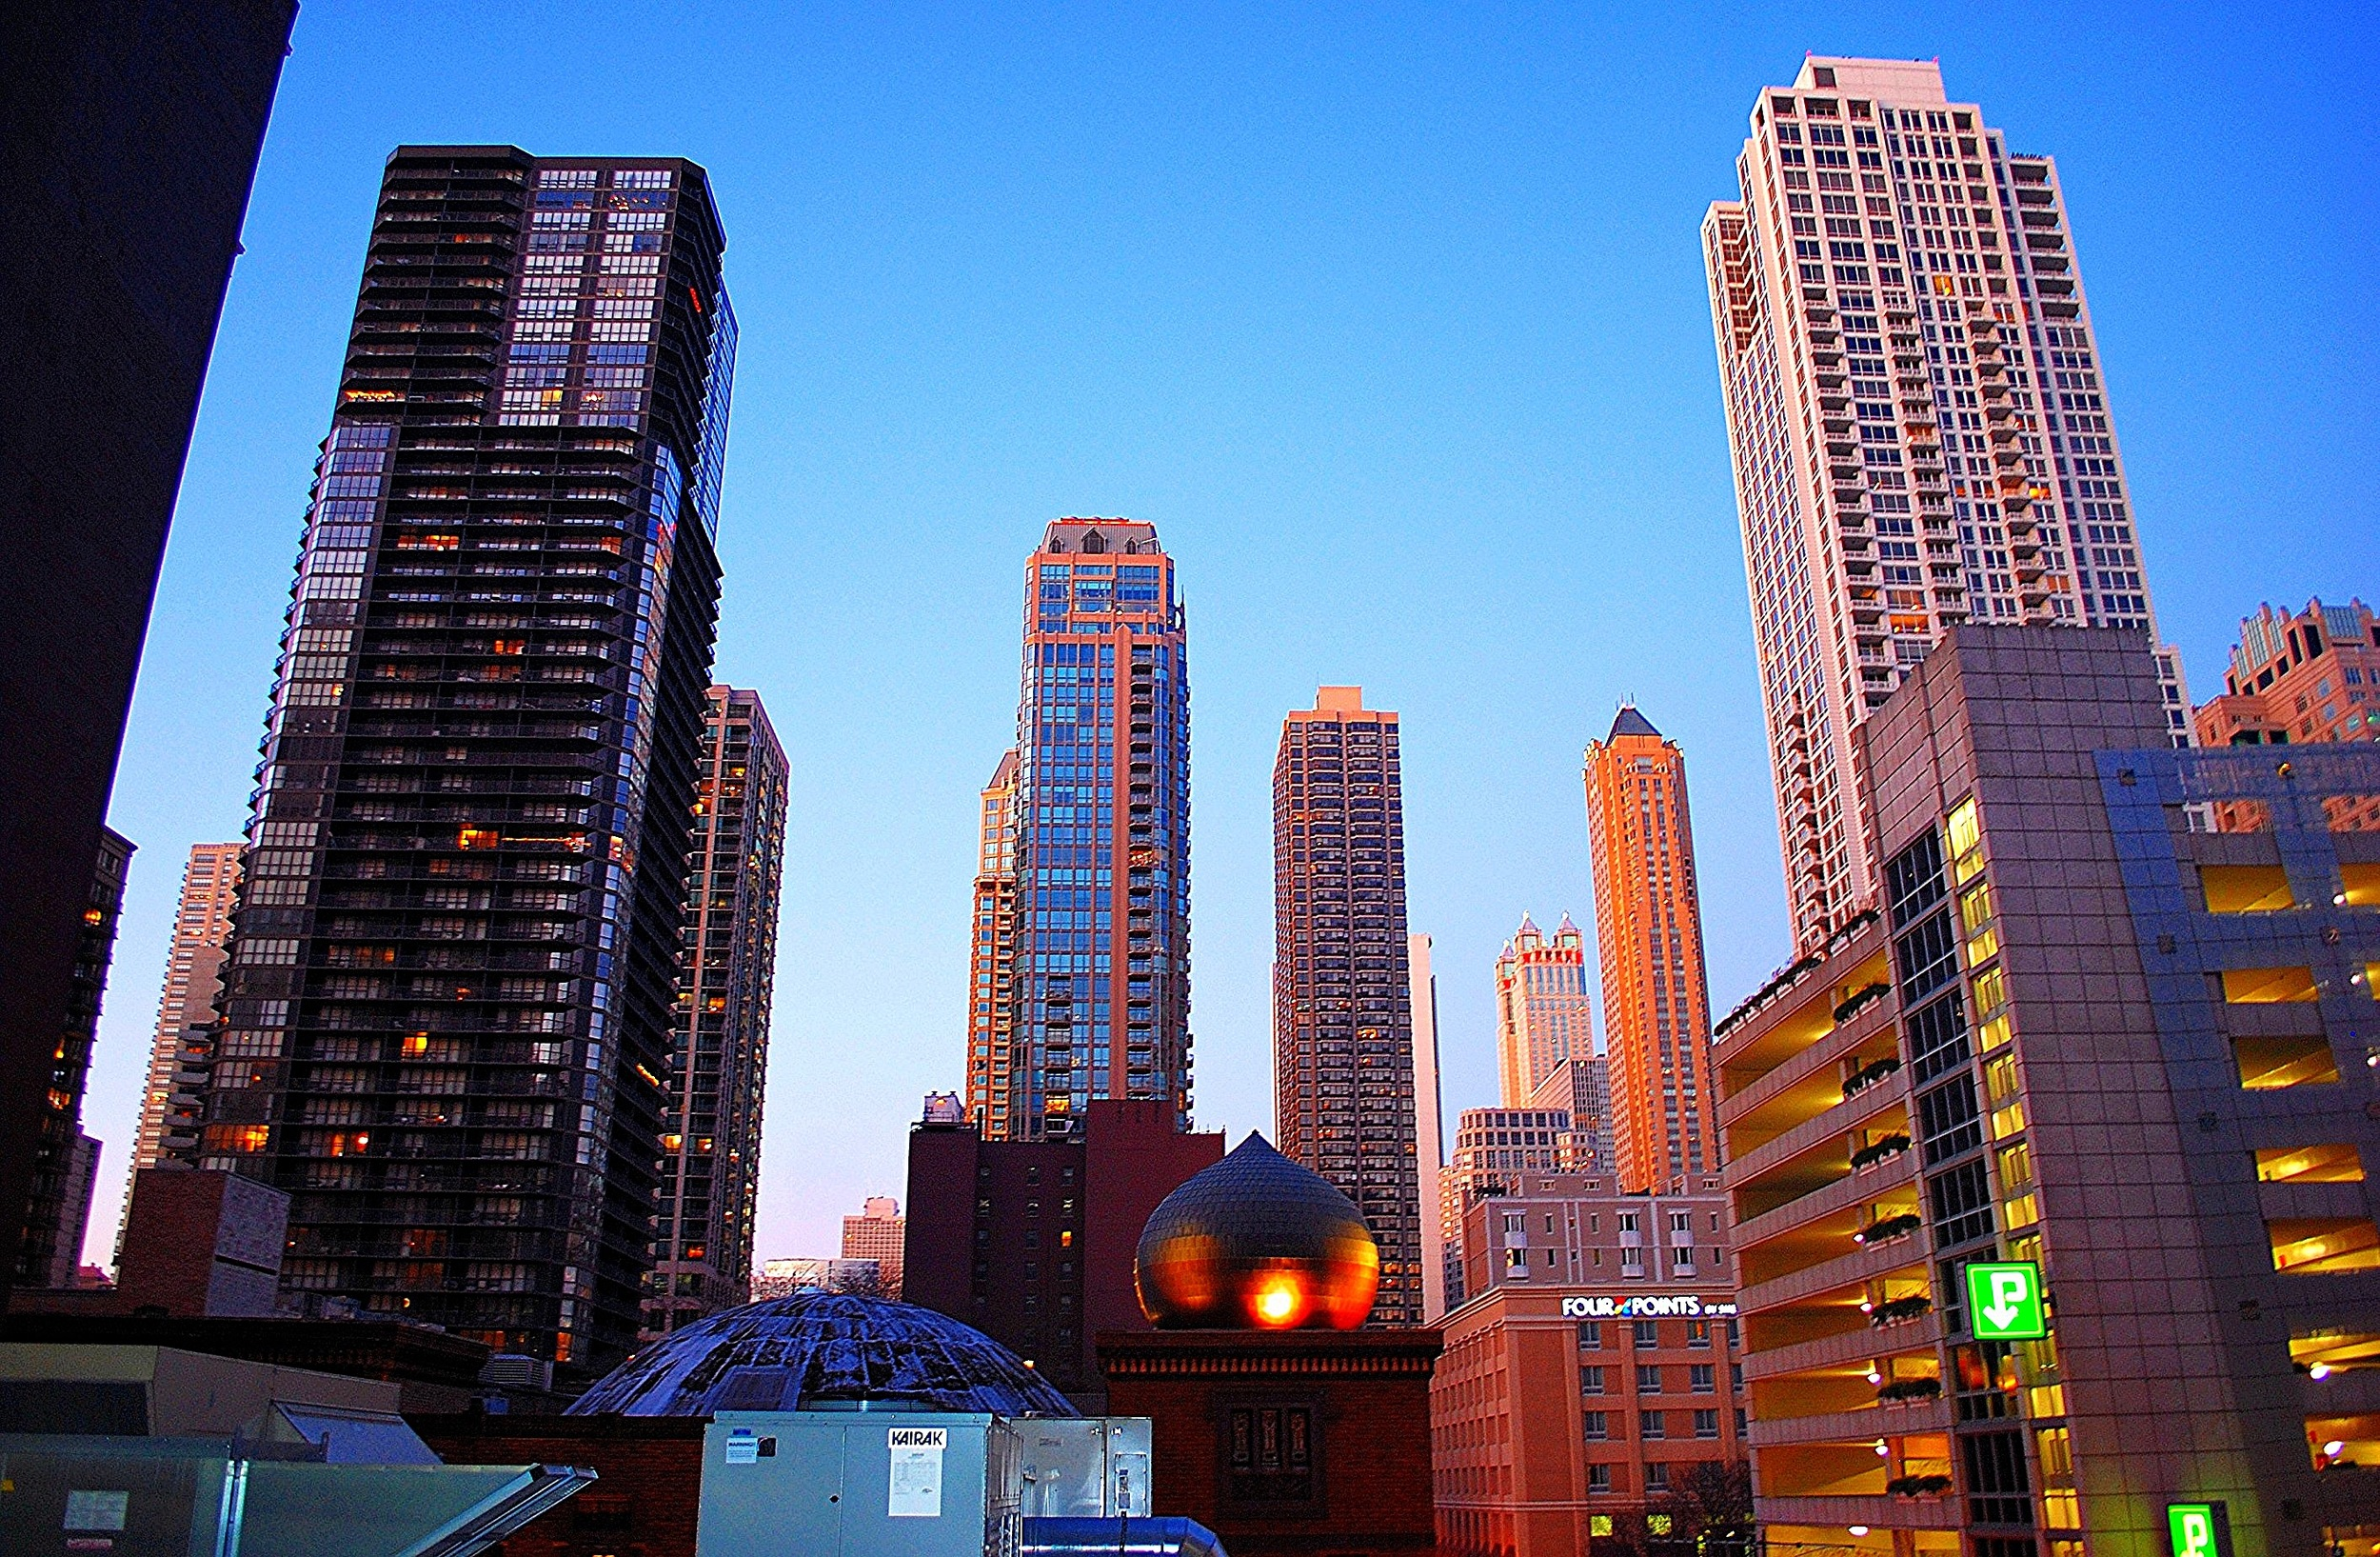 Downtown Chicago at Dusk Nathan Fischer 2011 Photograph 11x14 or custom $75